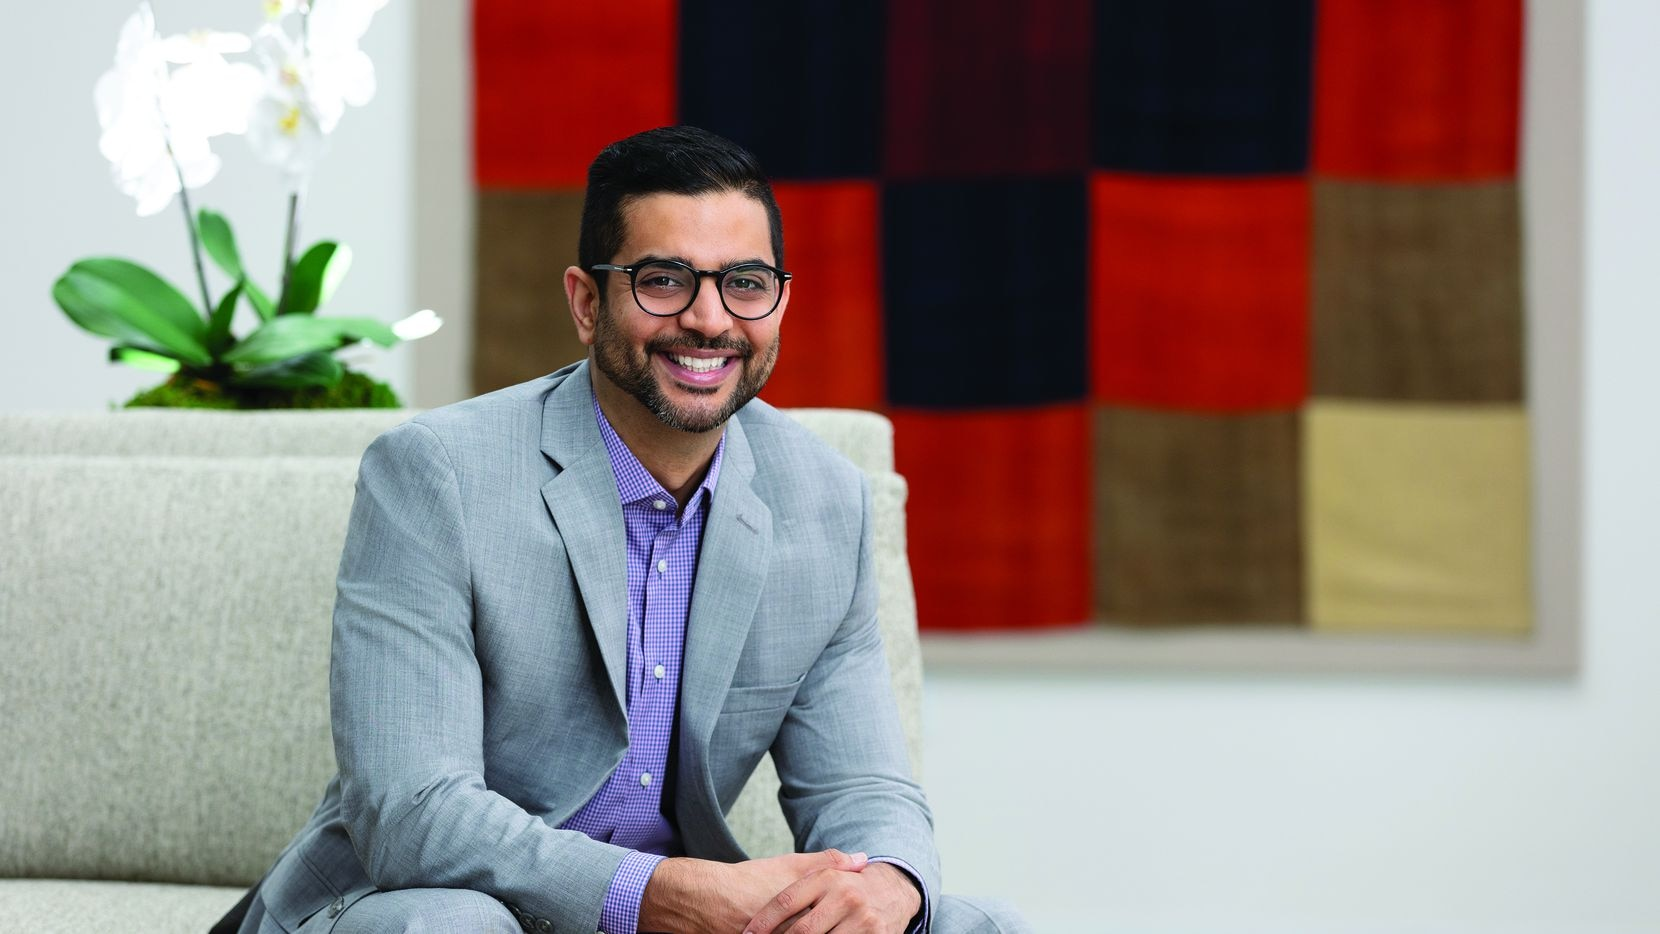 Mayur Chudasama is the new director of property management for the Ebby Halliday Companies.